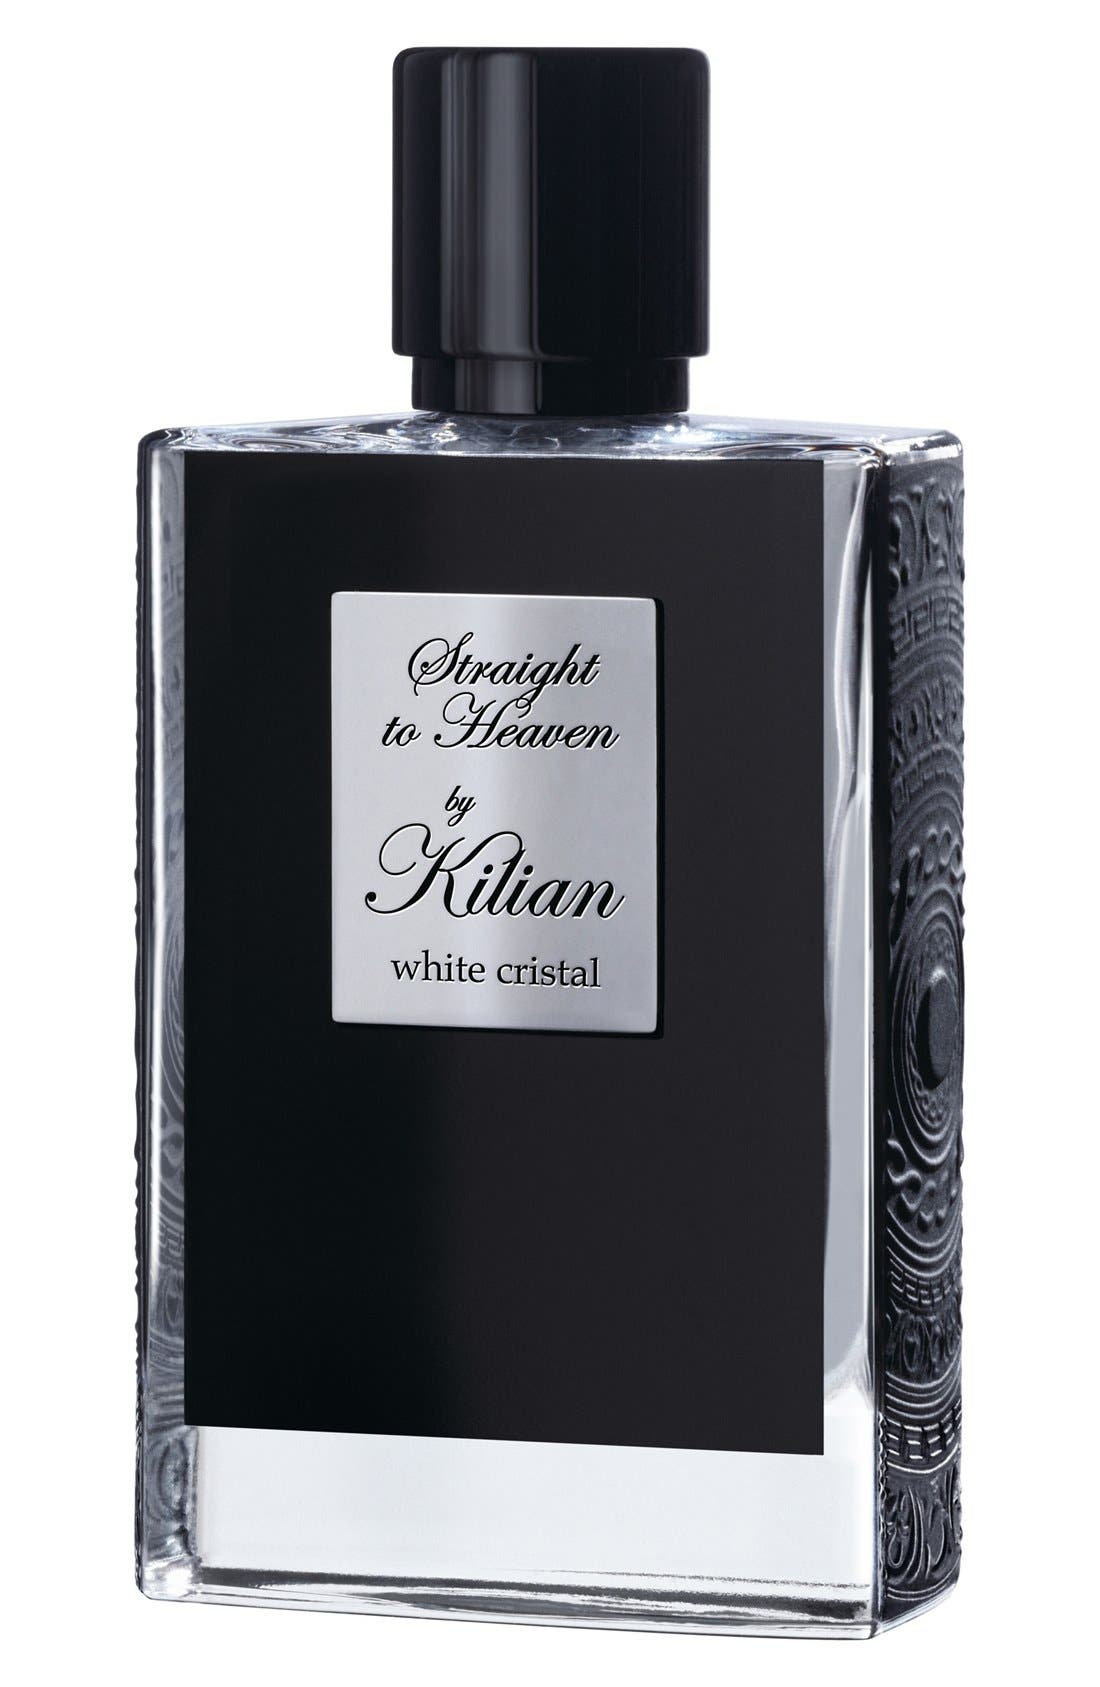 Kilian 'L'Oeuvre Noire - Straight to Heaven, white cristal' Refillable Fragrance Spray